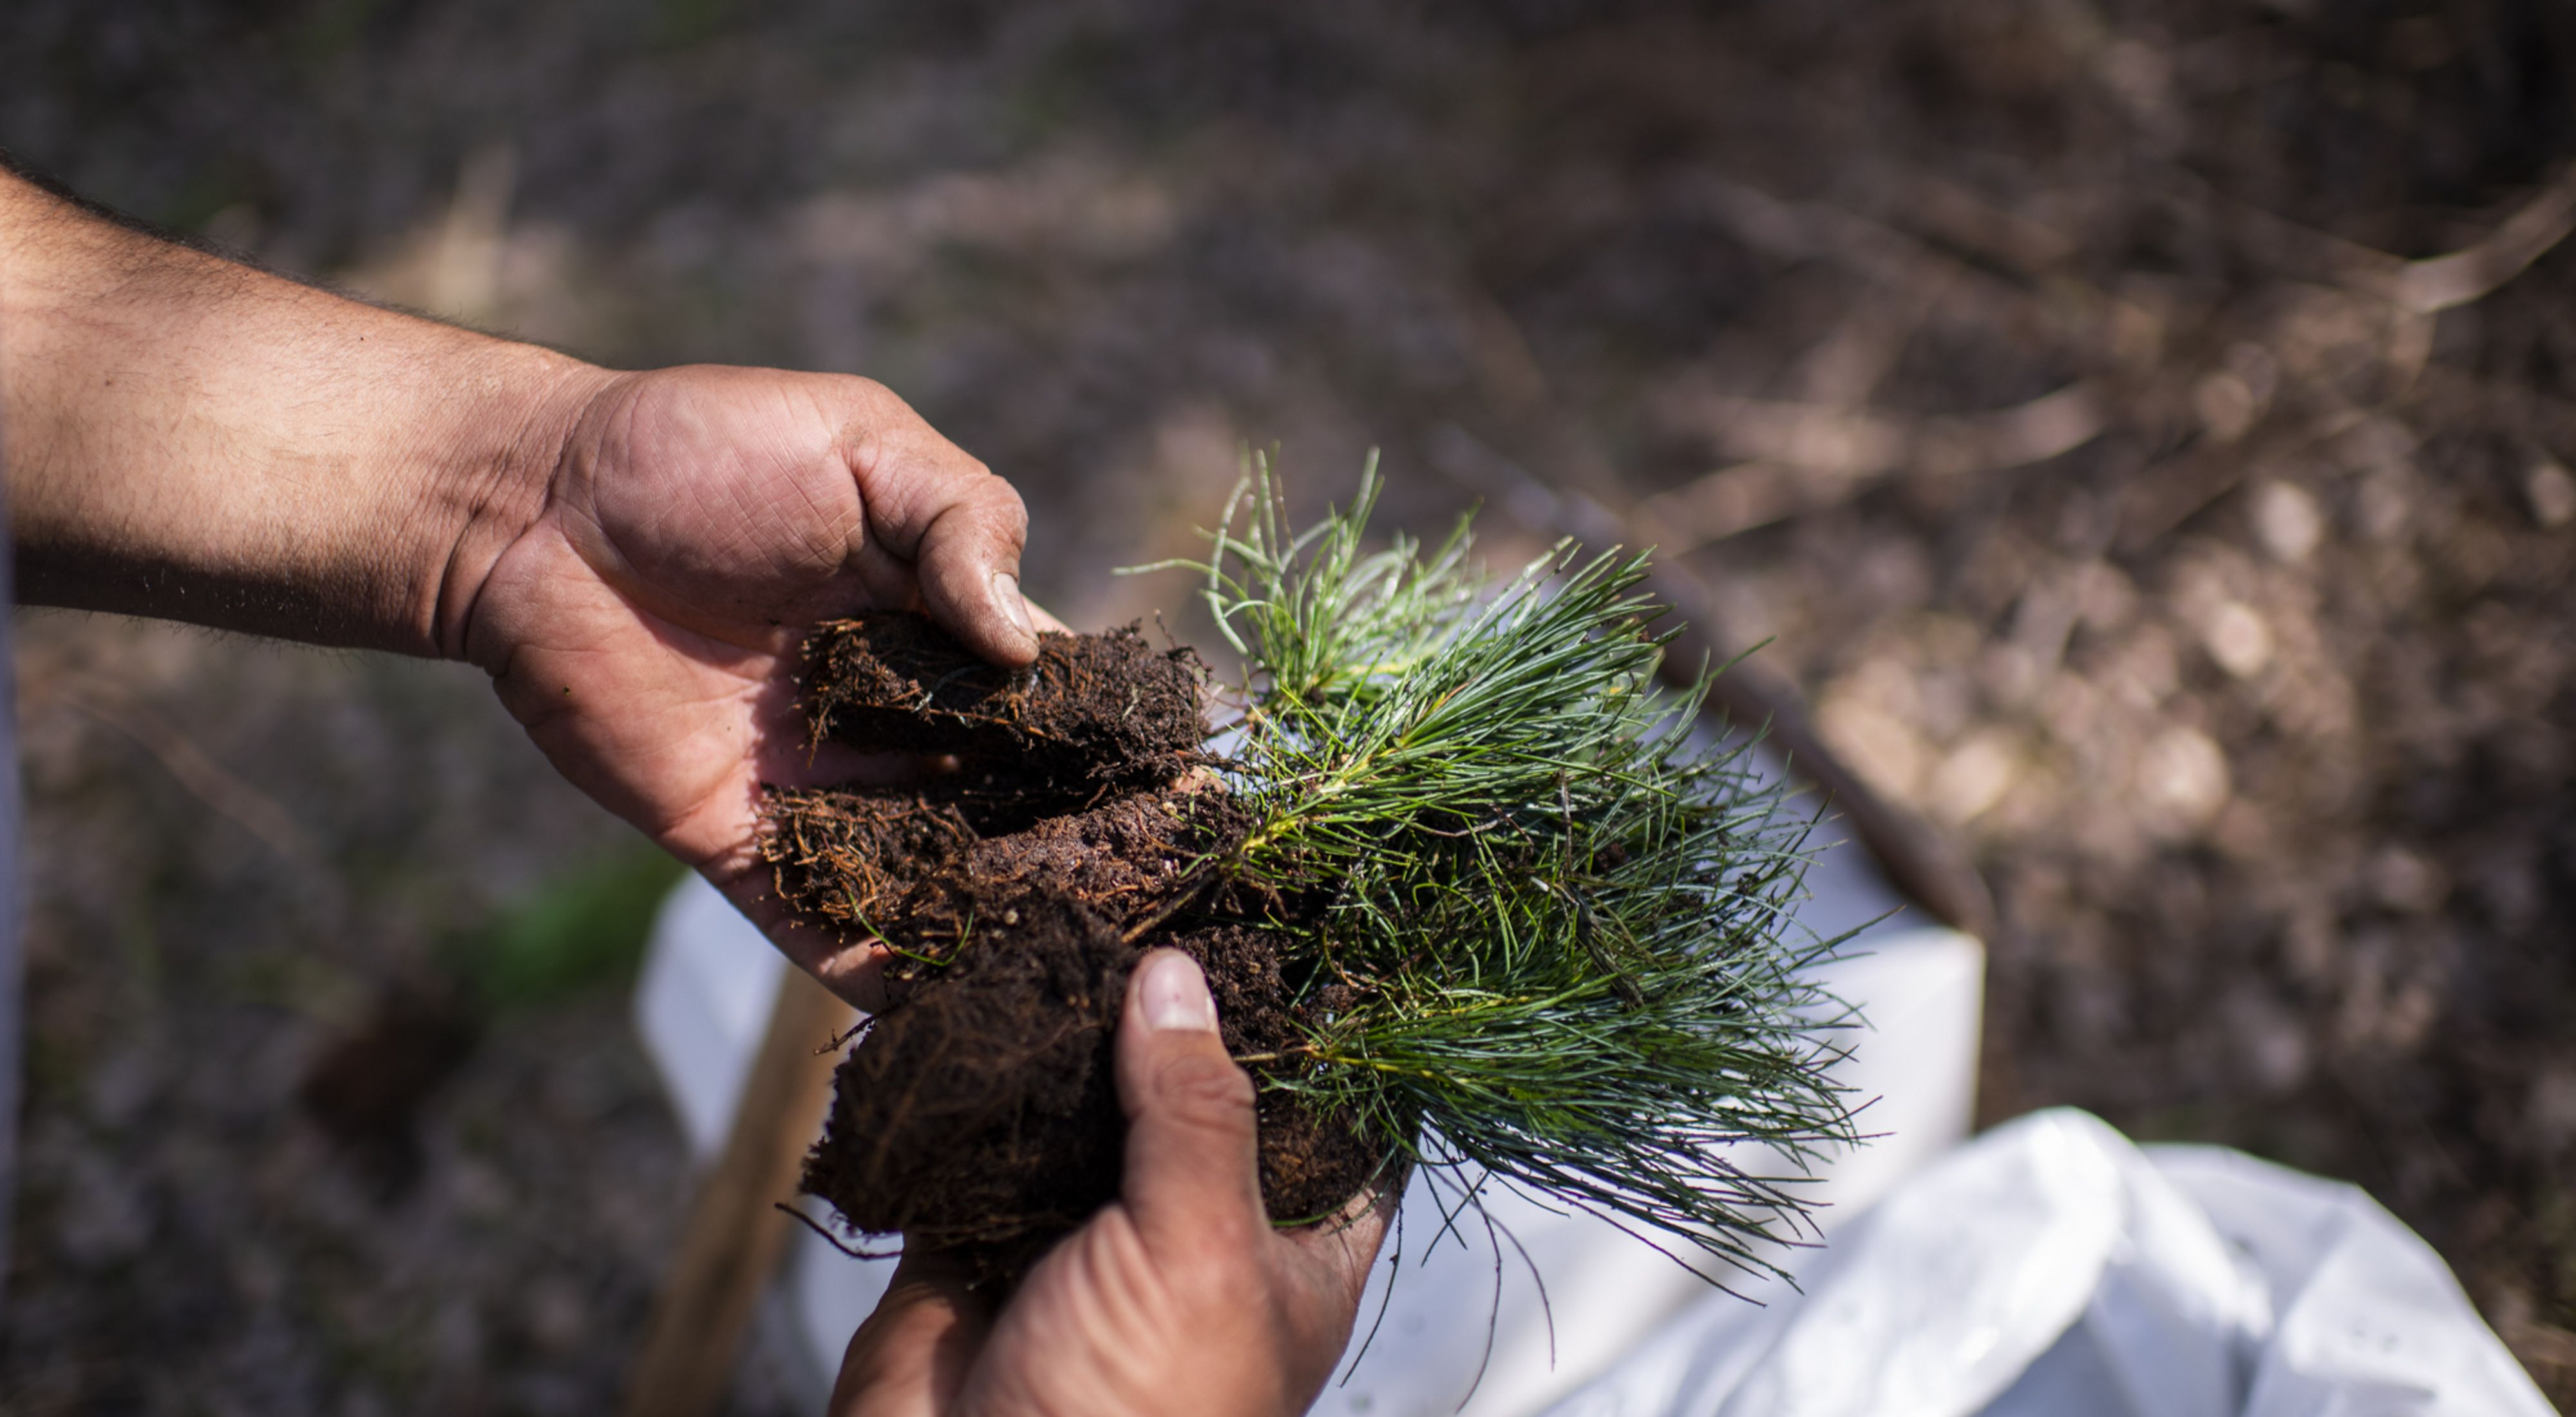 Hands holding a sprouting tree in soil.